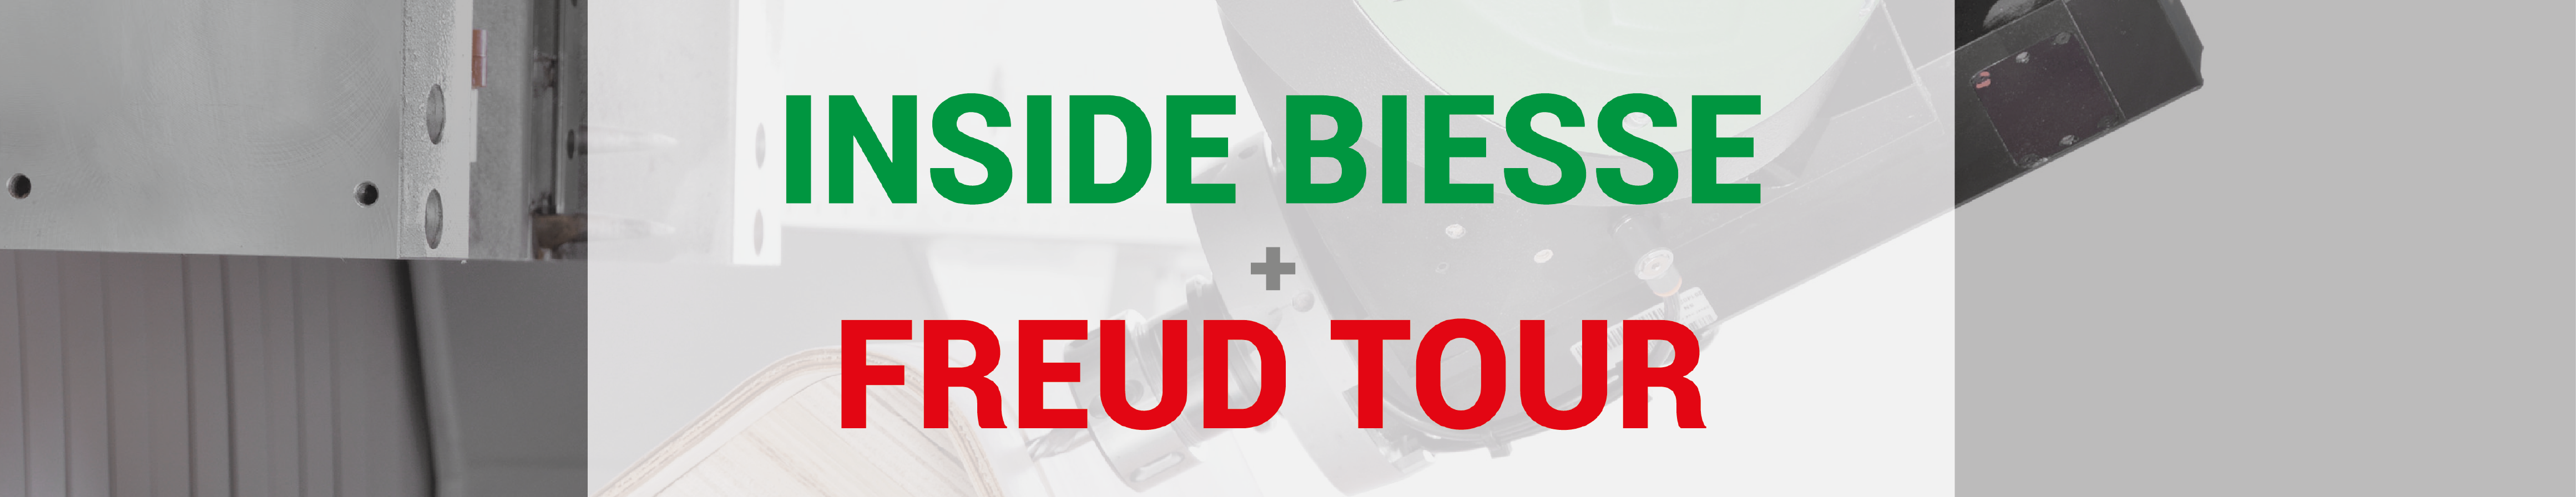 Inside Biesse + Freud Tour